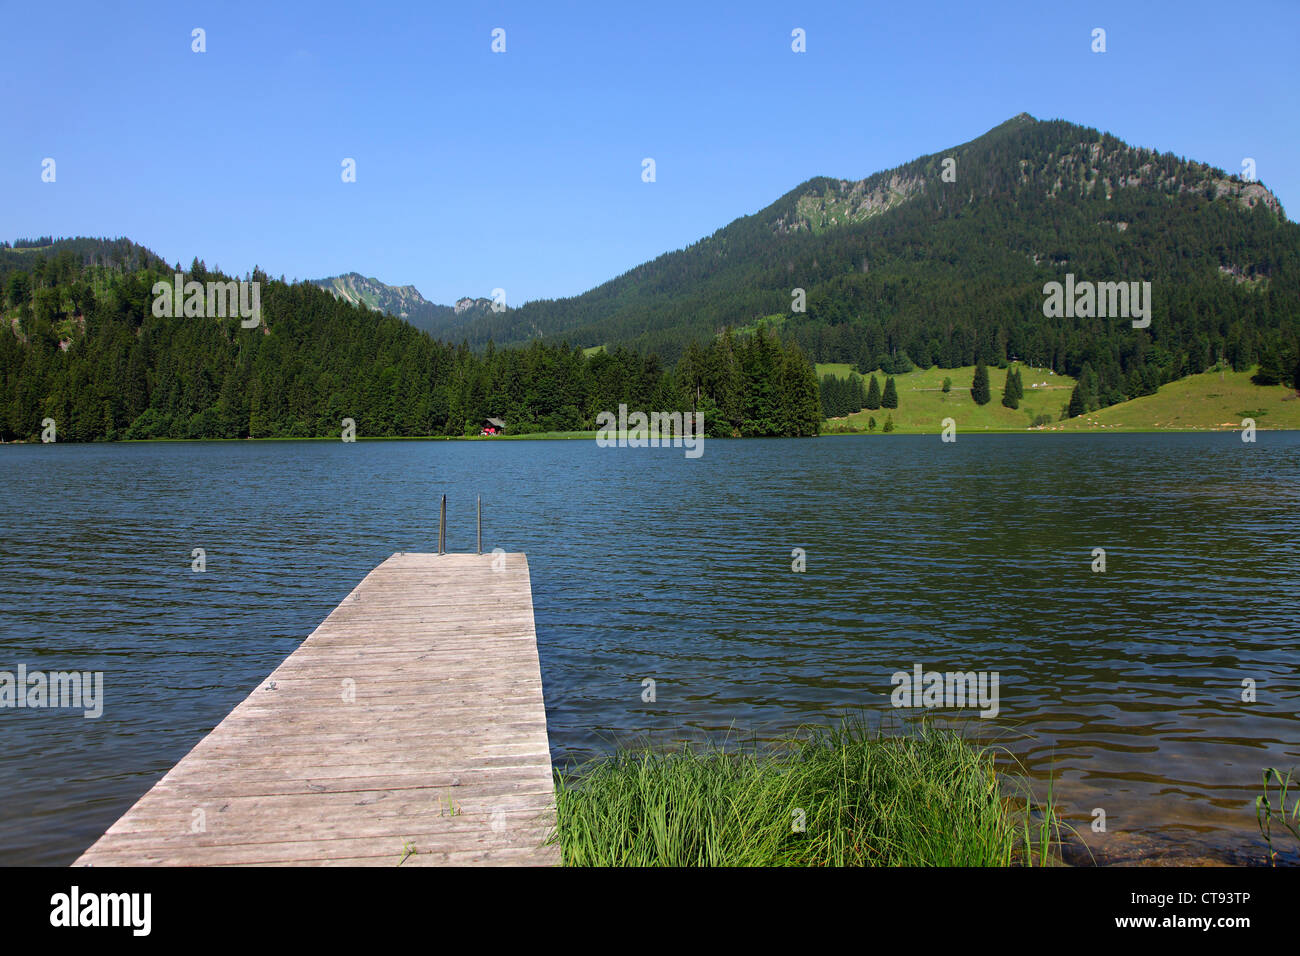 Spitzingsee  lake. An alpine lake in the Bavarian alps. - Stock Image